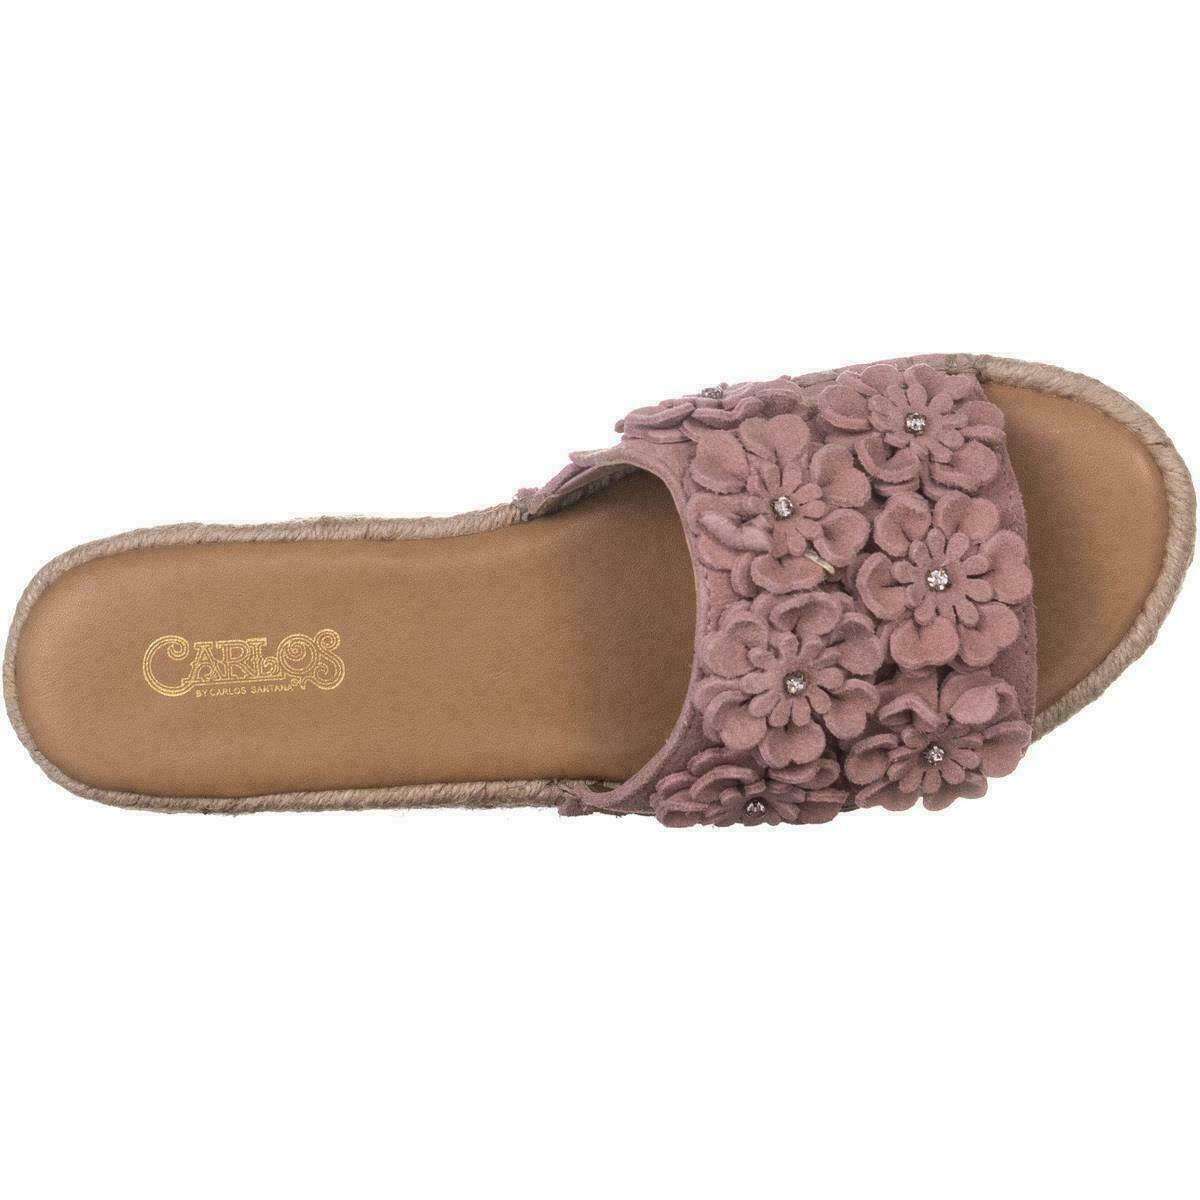 Carlos by Carlos Santana Chandler Sandals Pink Blush, Size 6 M